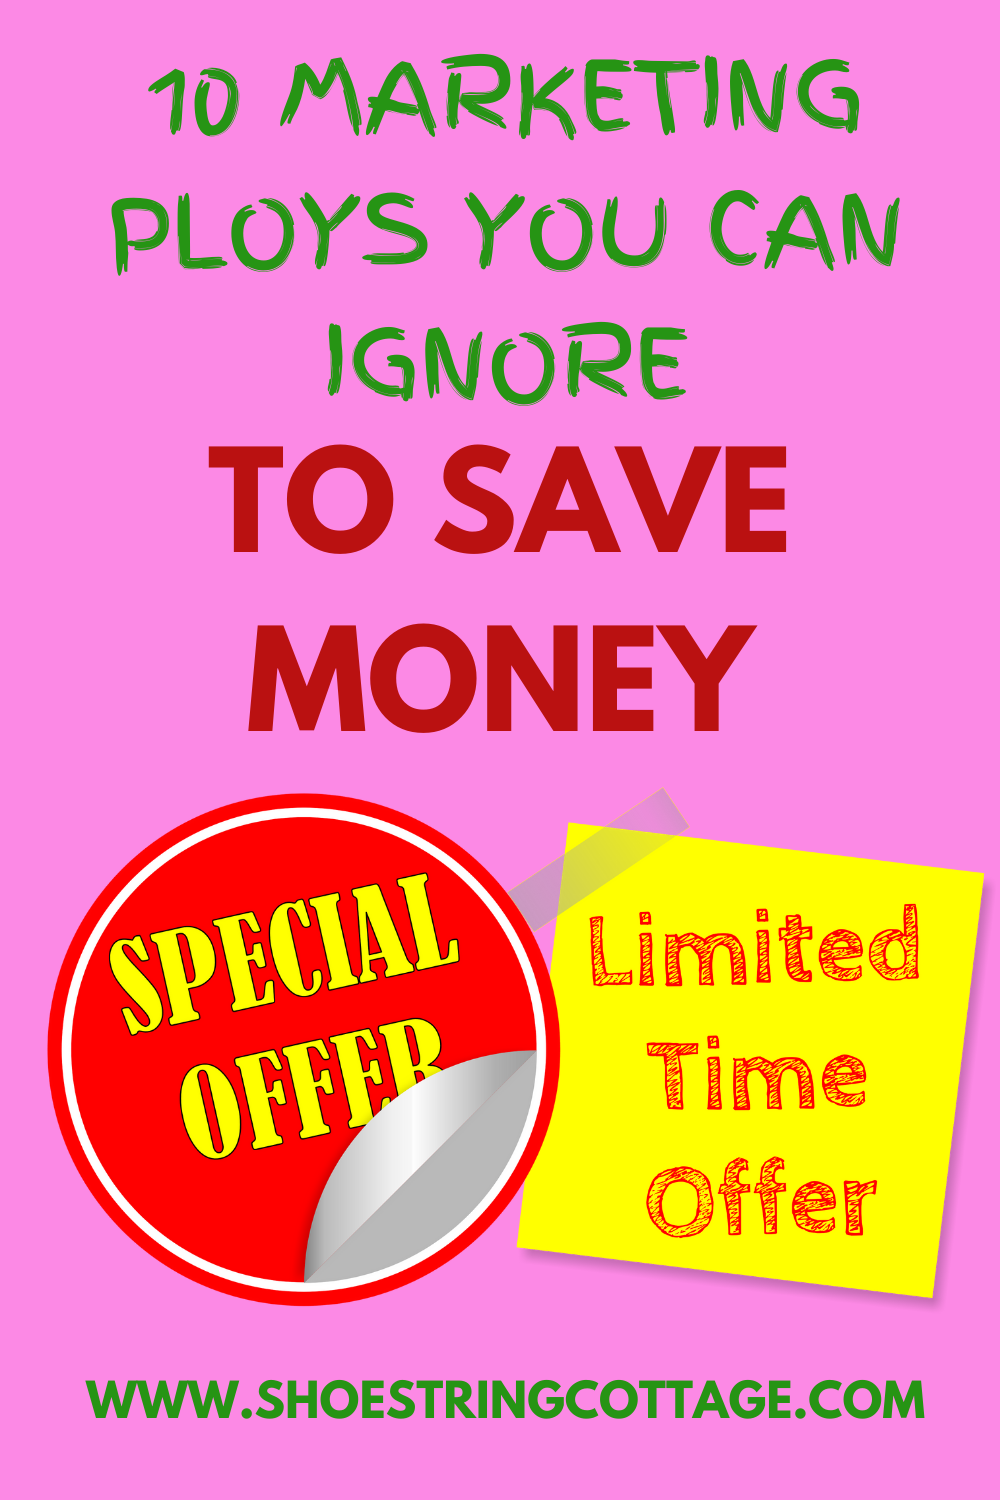 marketing ploys you can ignore to save money